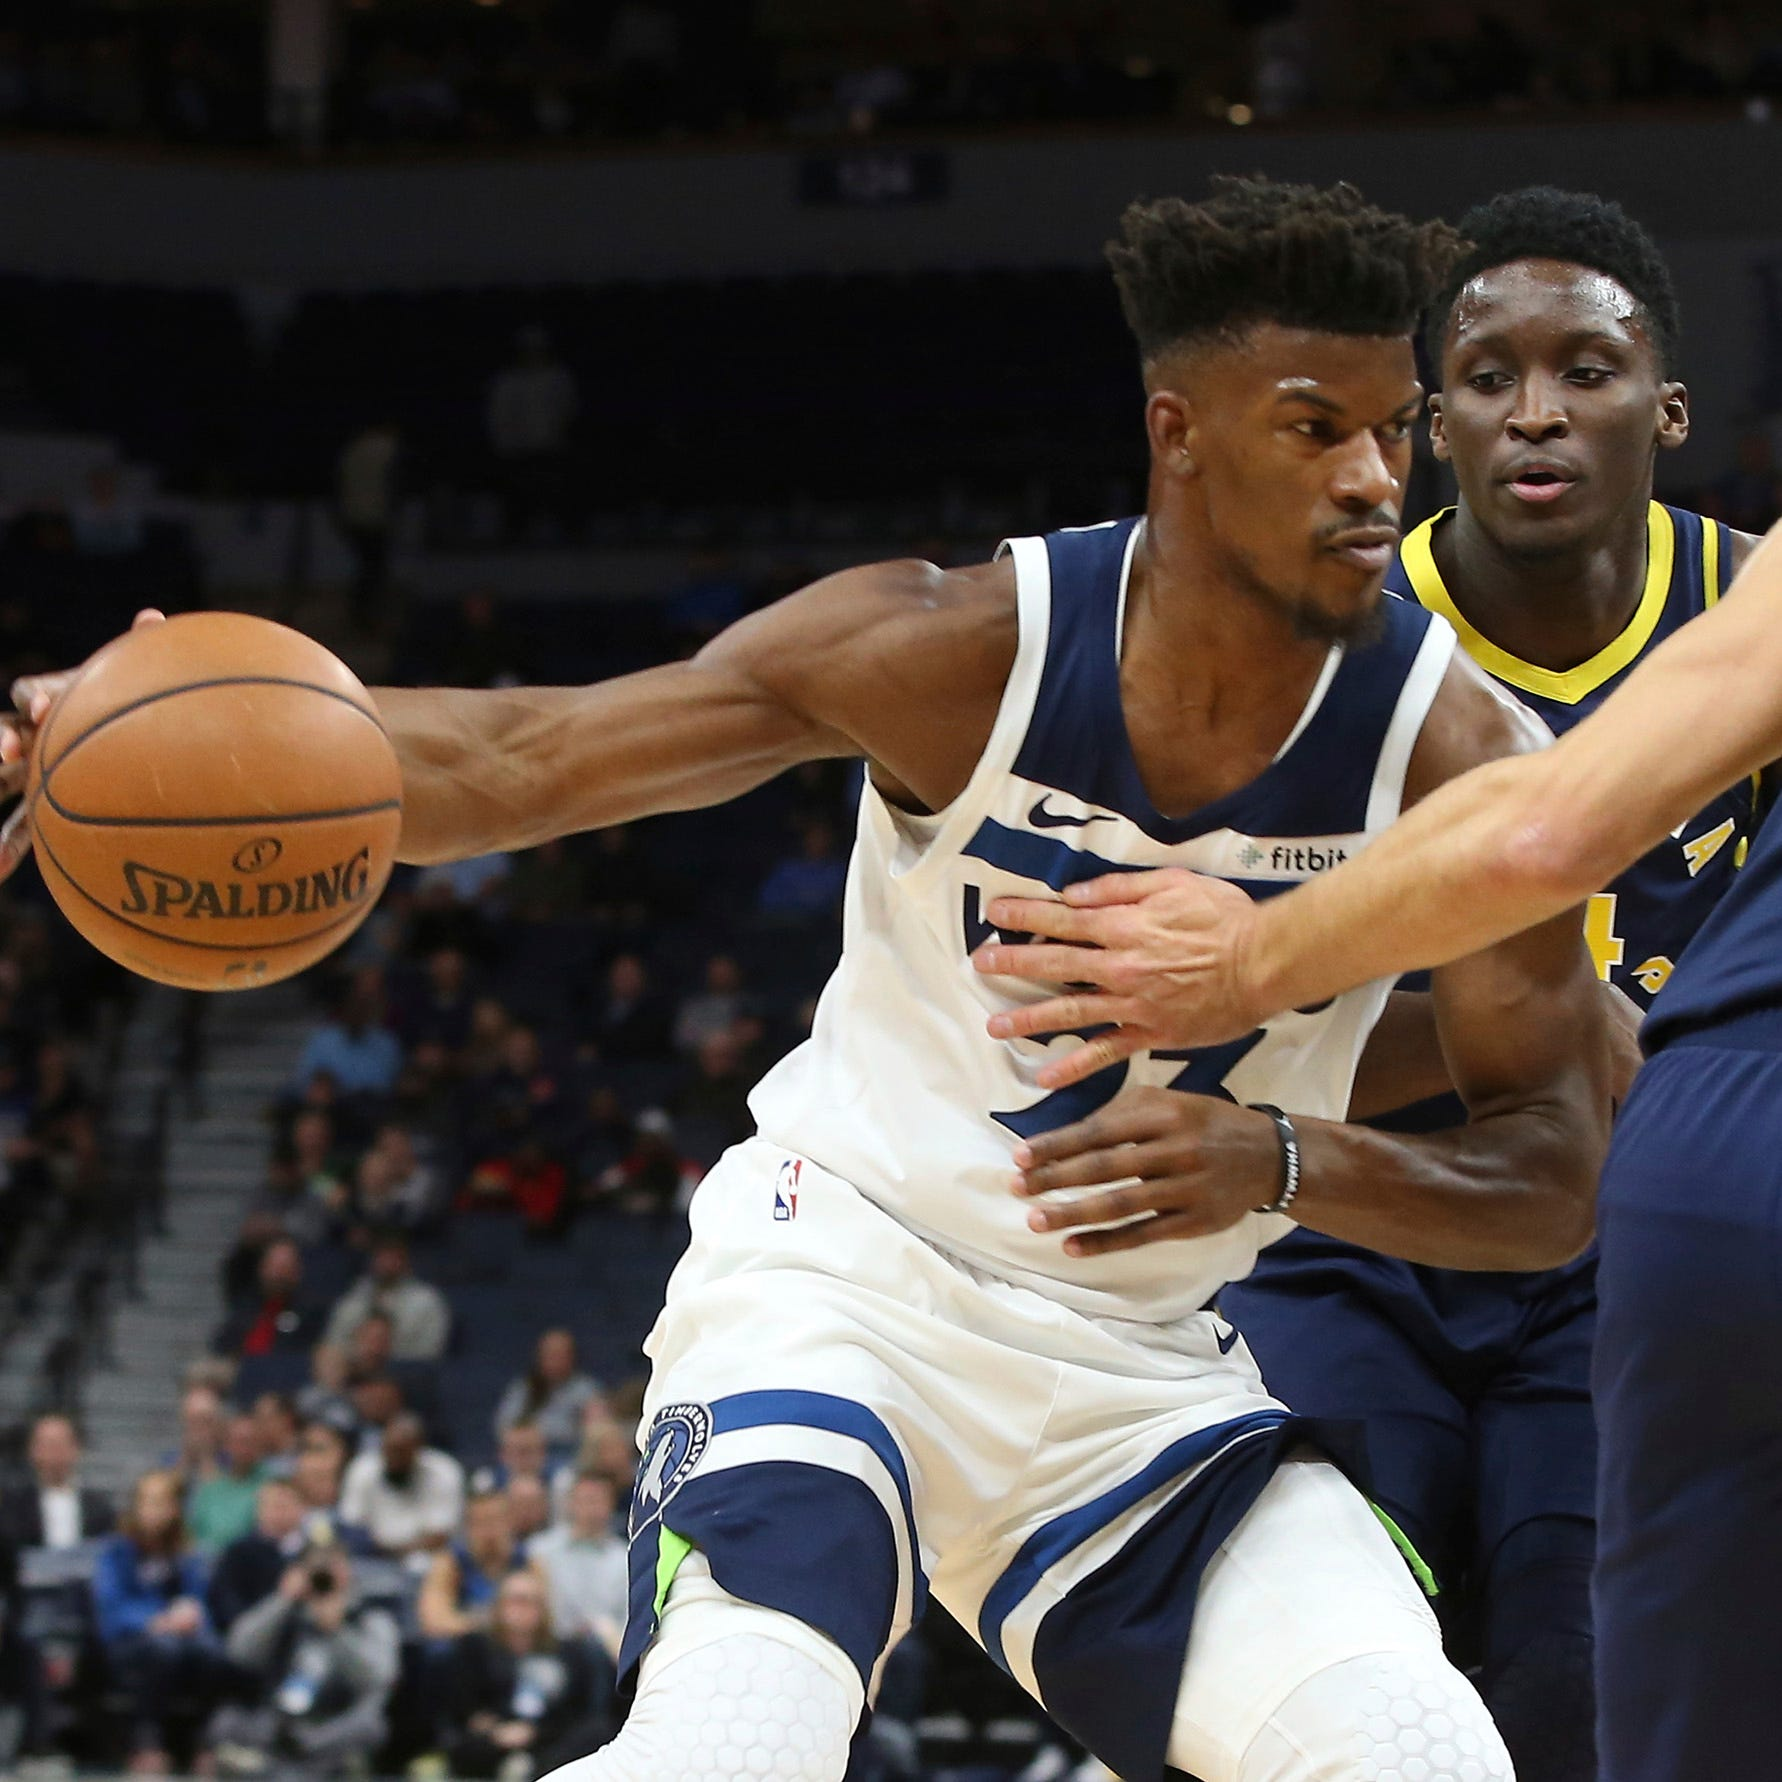 Pacers' offense bogs down with turnovers in road loss to Timberwolves